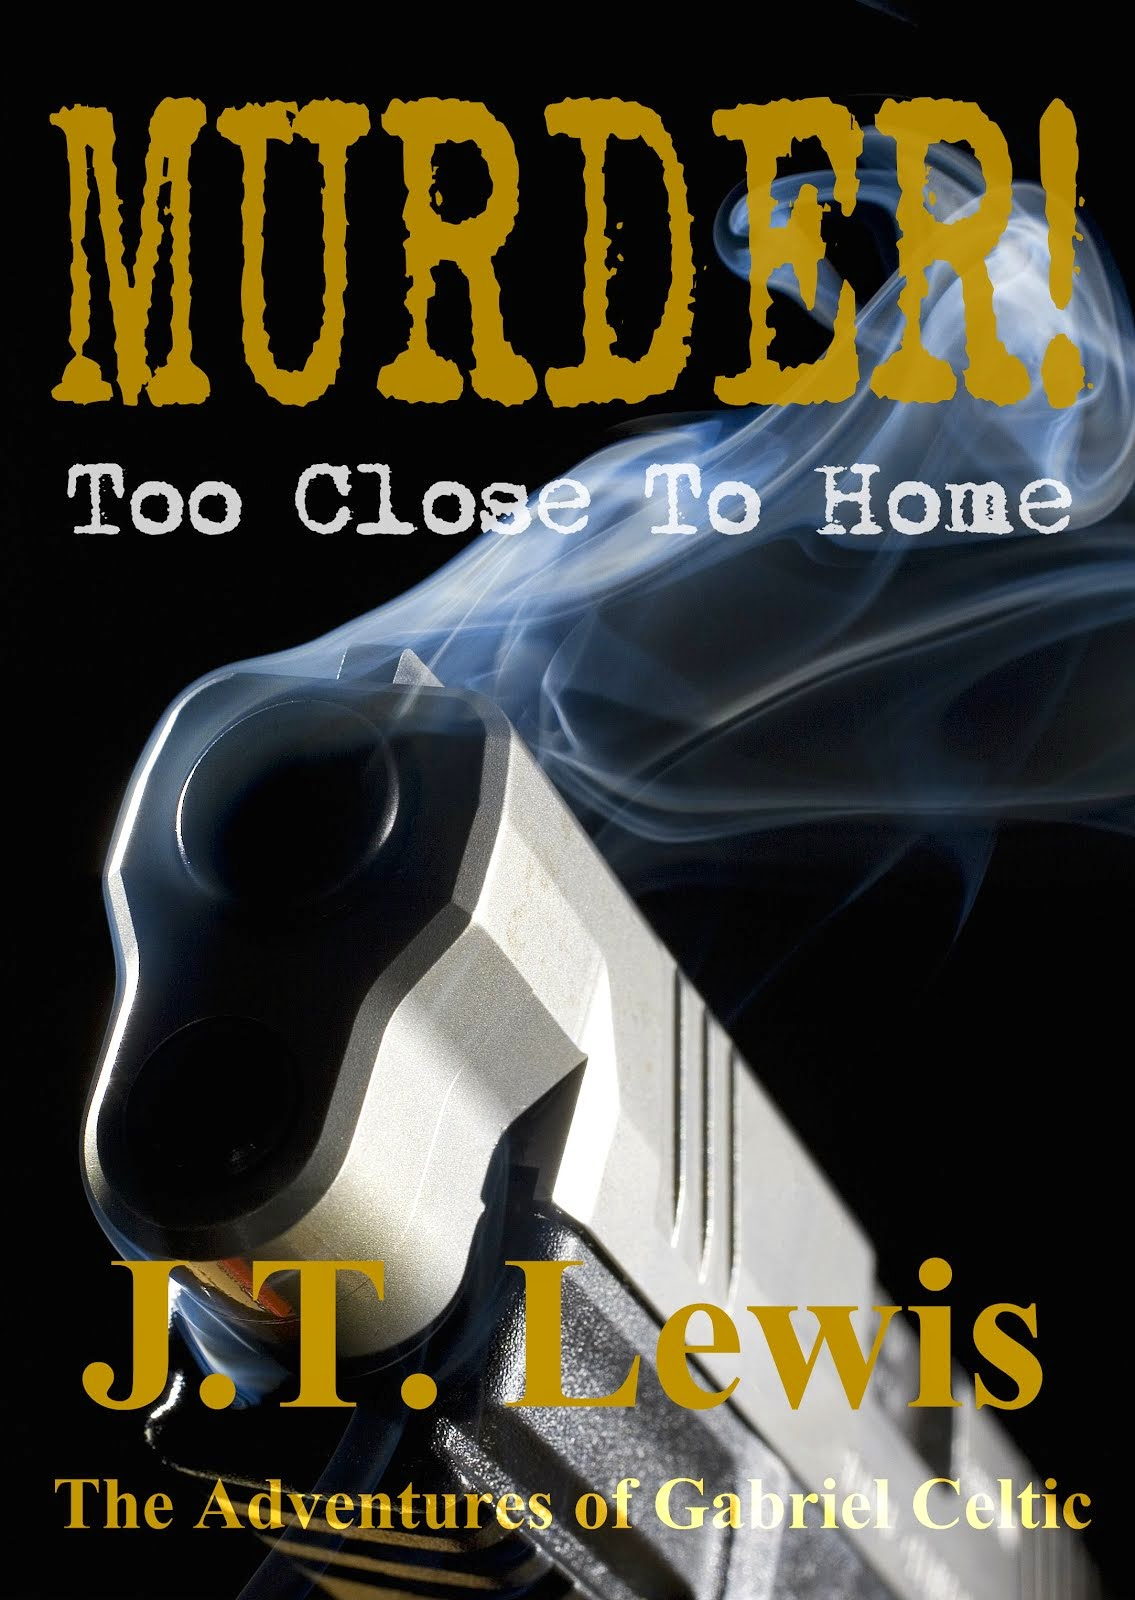 My Flypod Interview on Murder! Too Close To Home